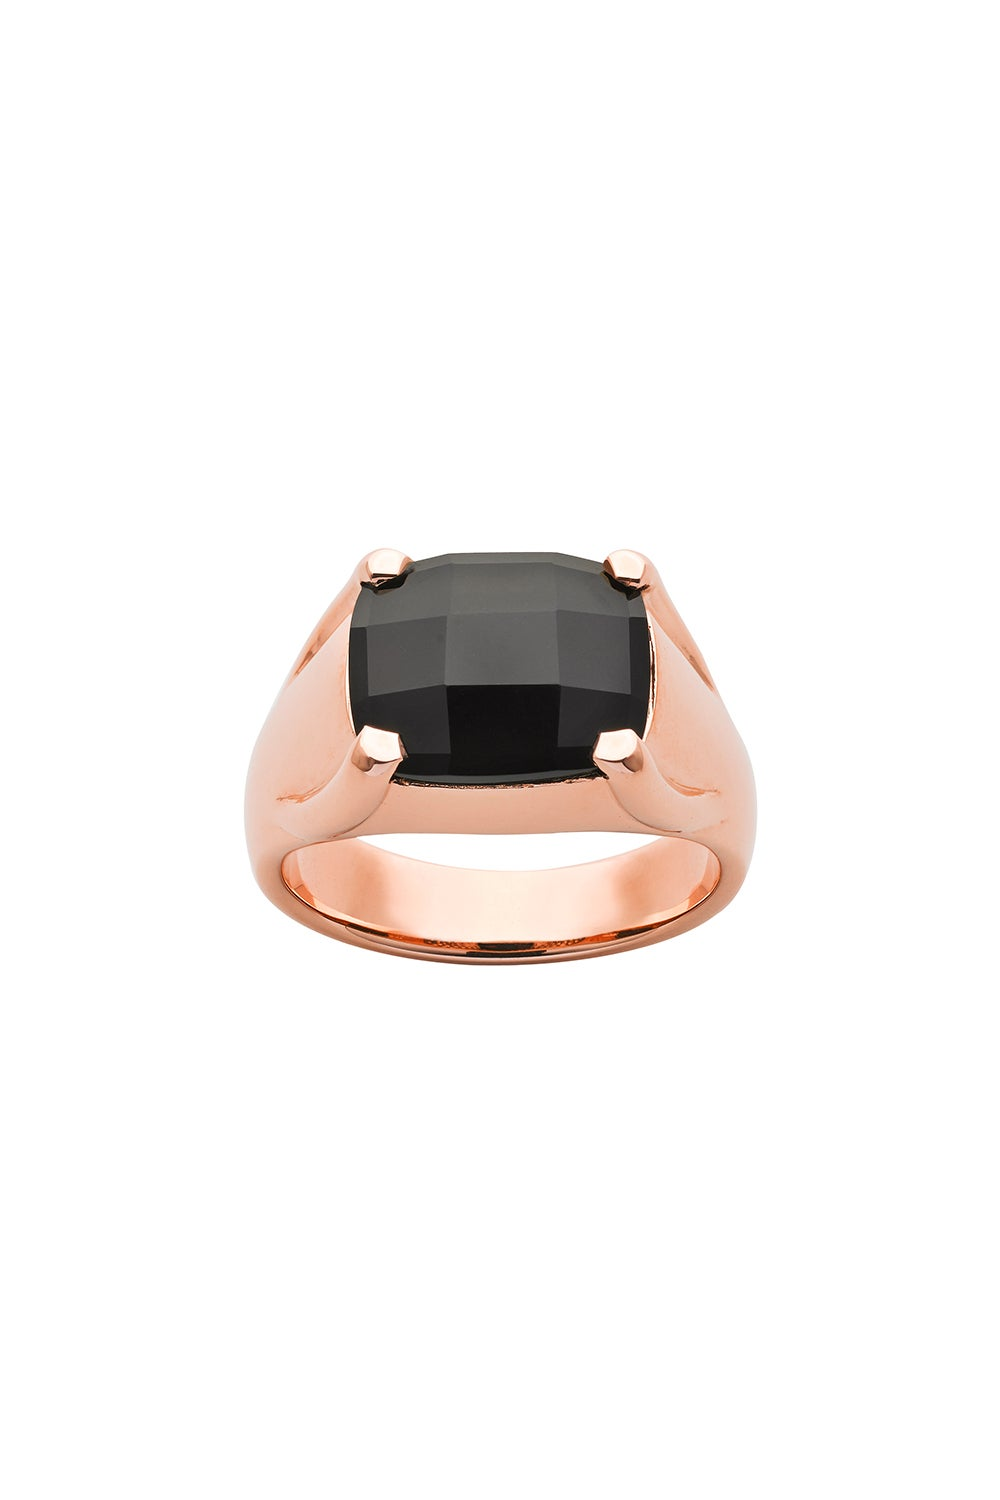 Chequerboard 12 X 10mm Onyx Rose Gold